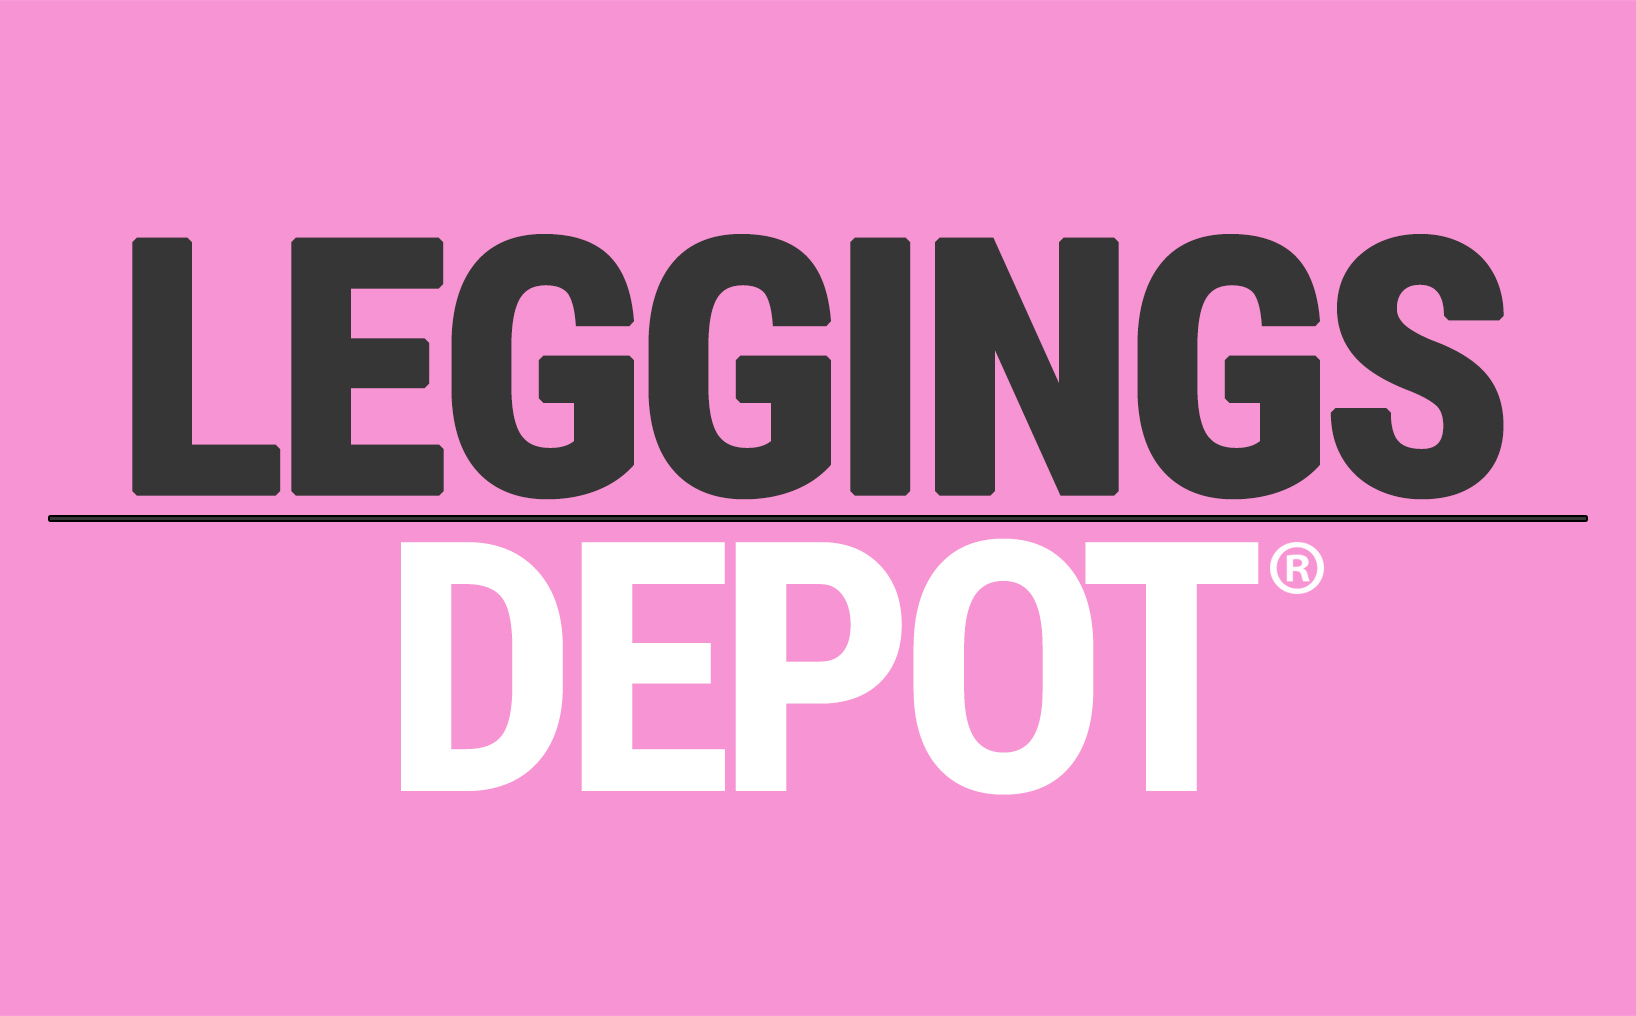 Leggings Depot